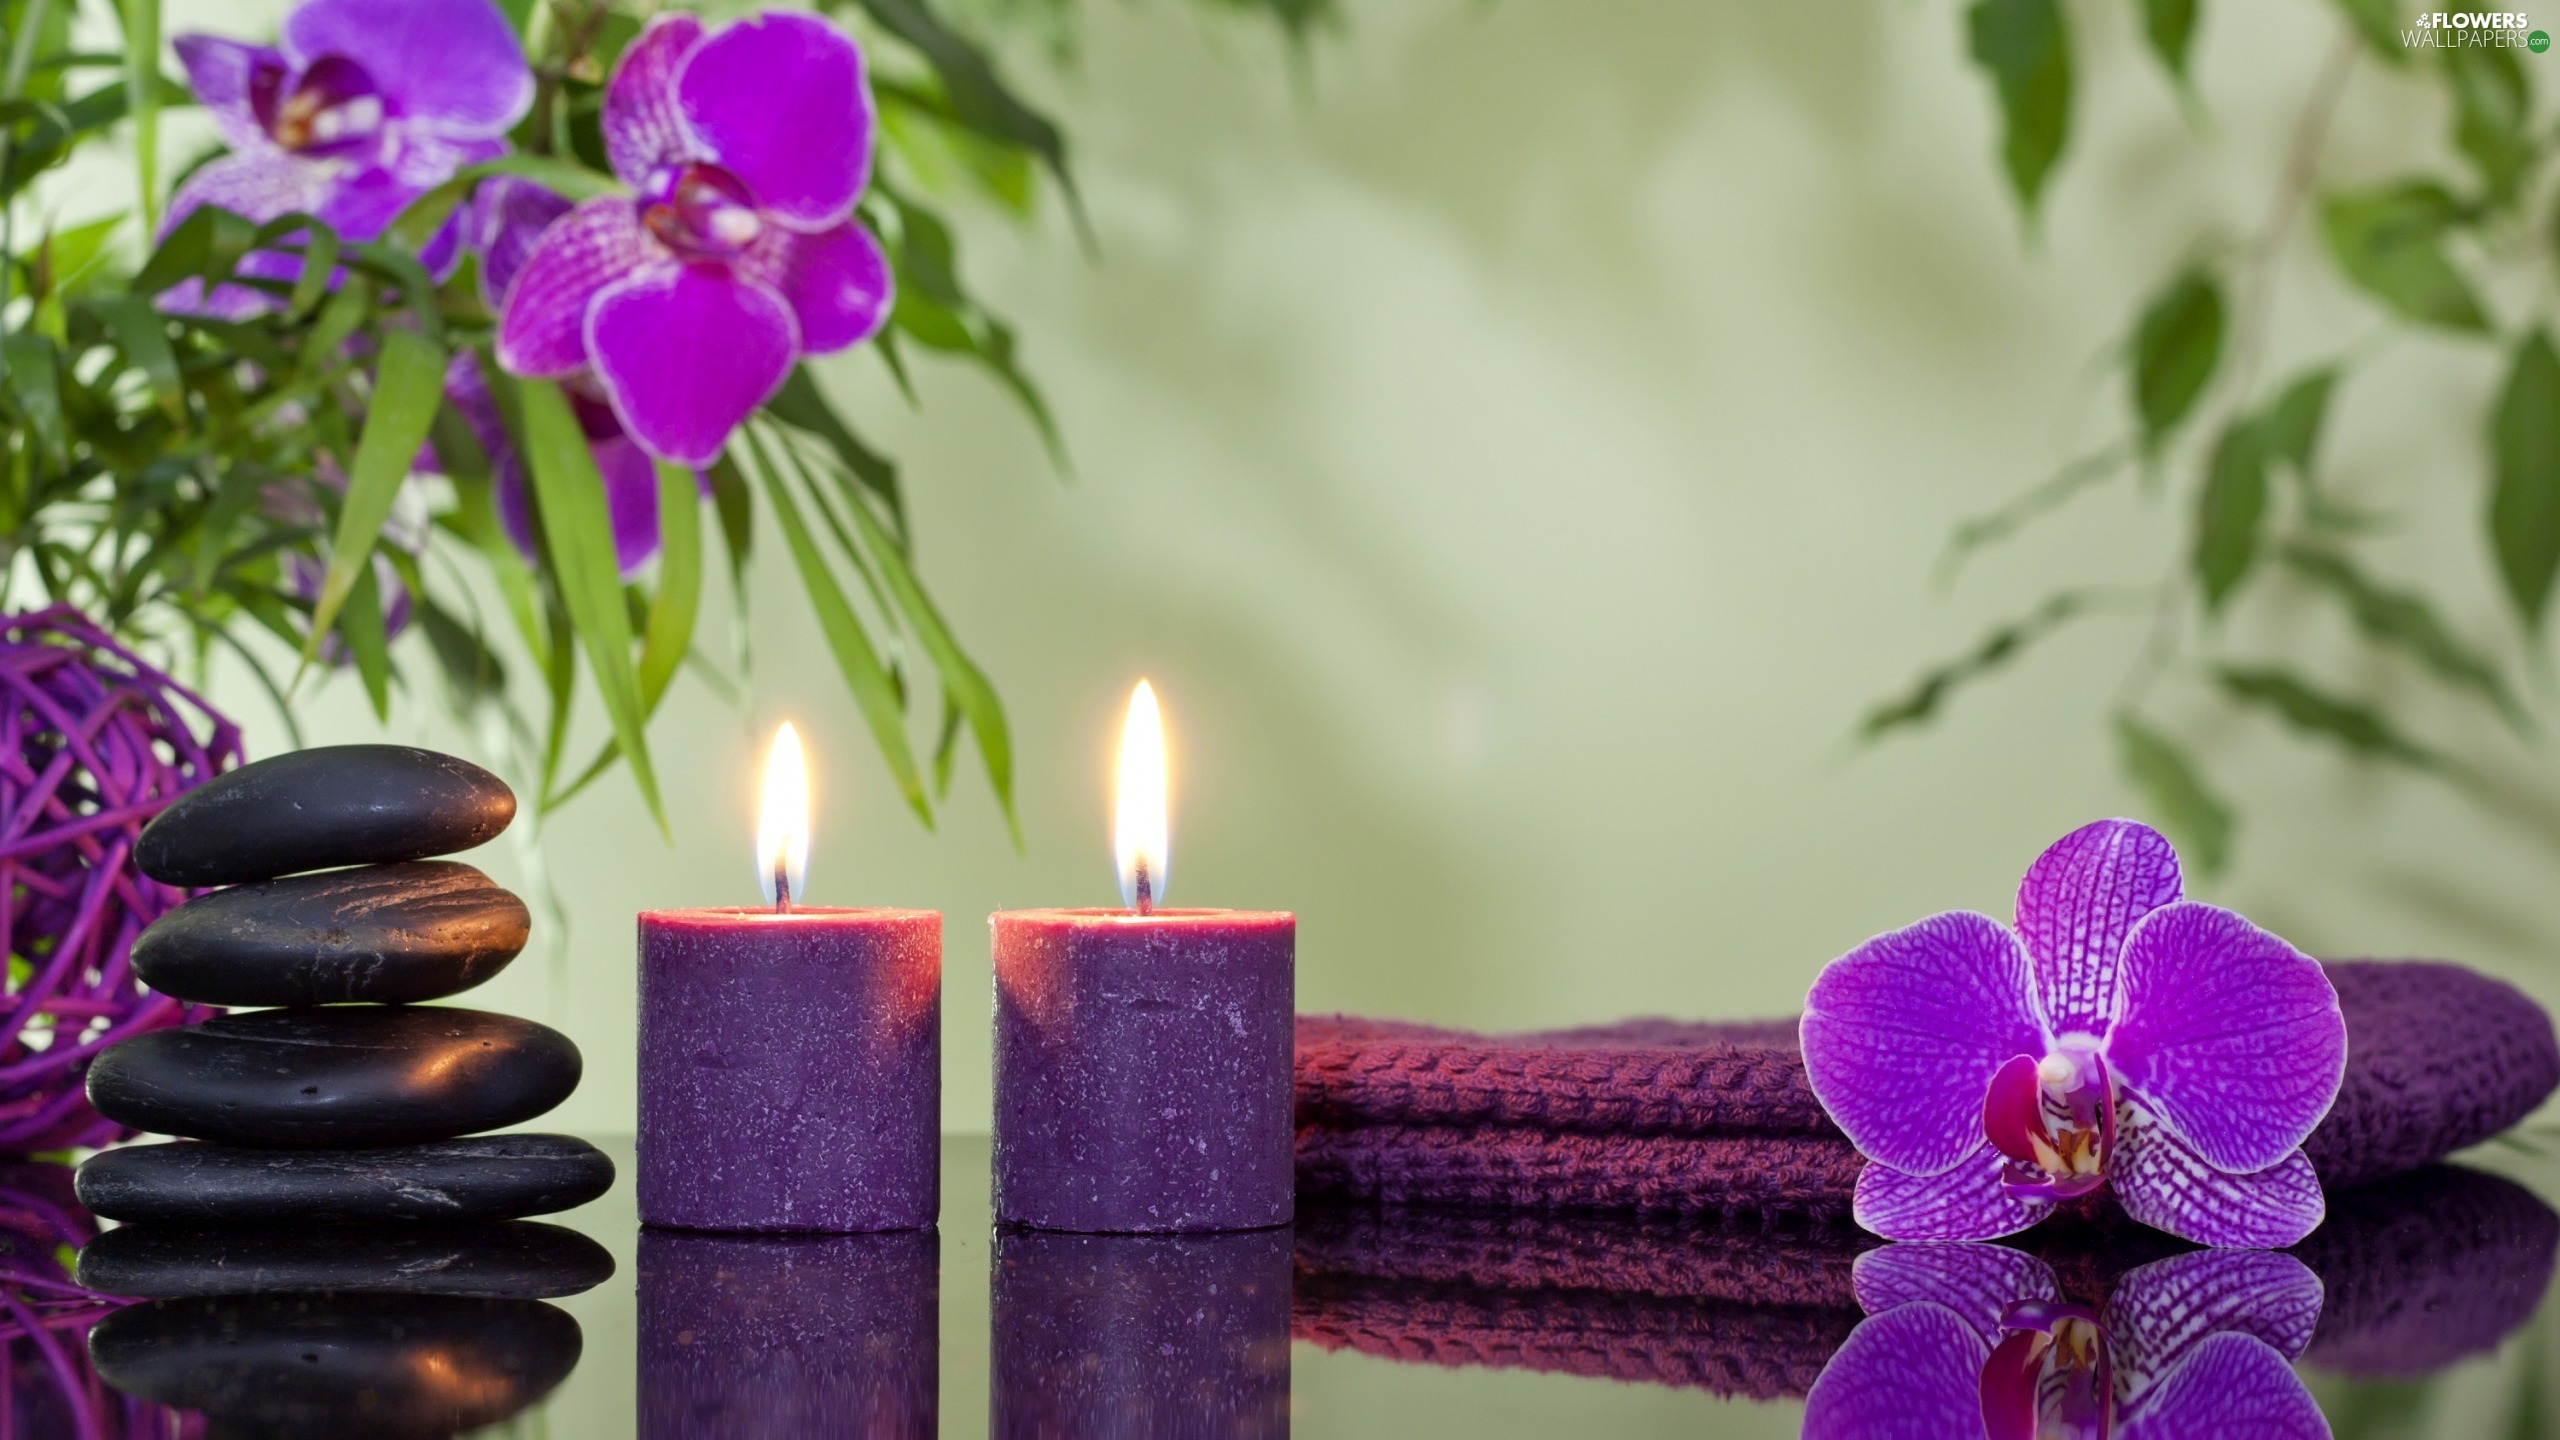 orchids, Spa, Candles, purple, composition, Two, Stones